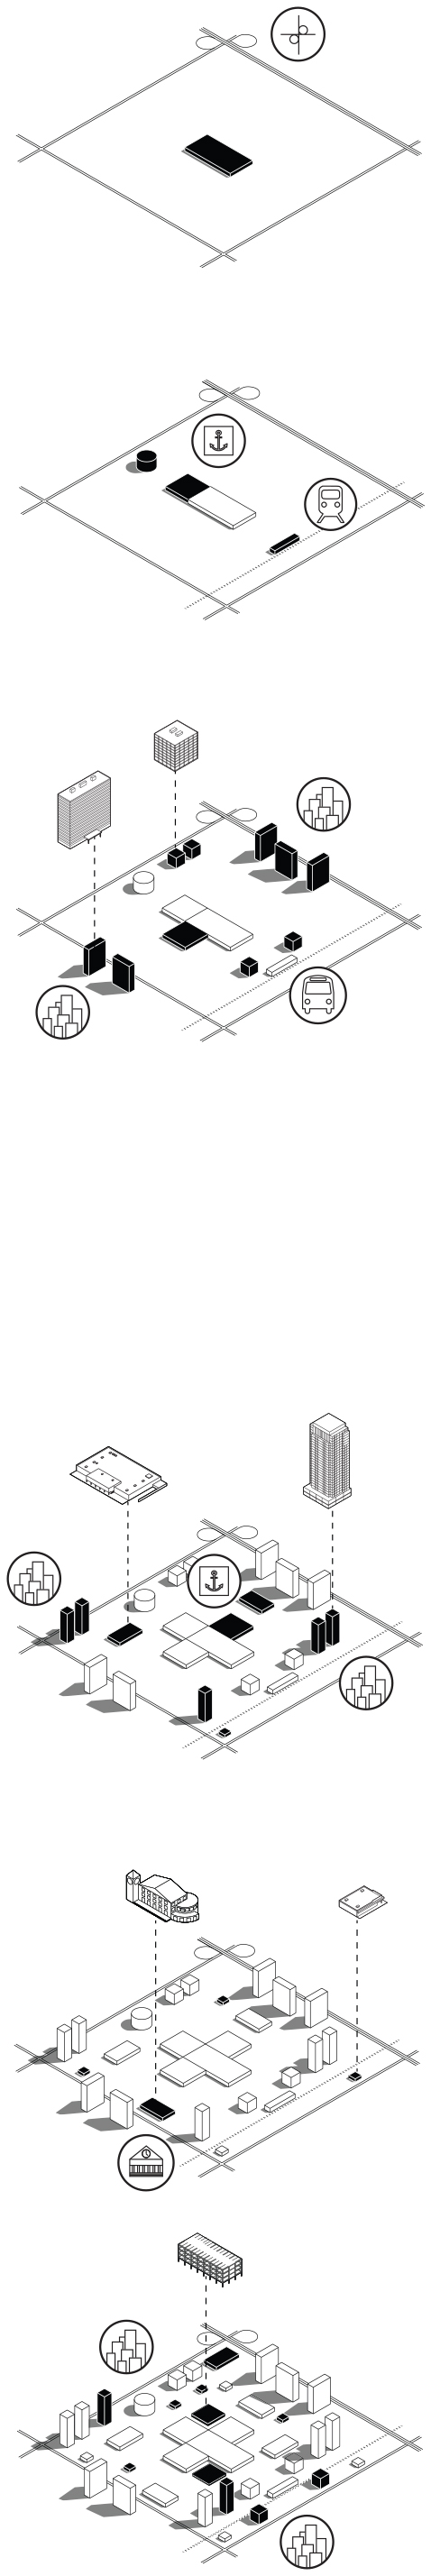 Image 2 / How to Play—Mall Growth Evolution, 2015. Illustration by Emma Dunn, Michael Piper, and Zoe Renaud